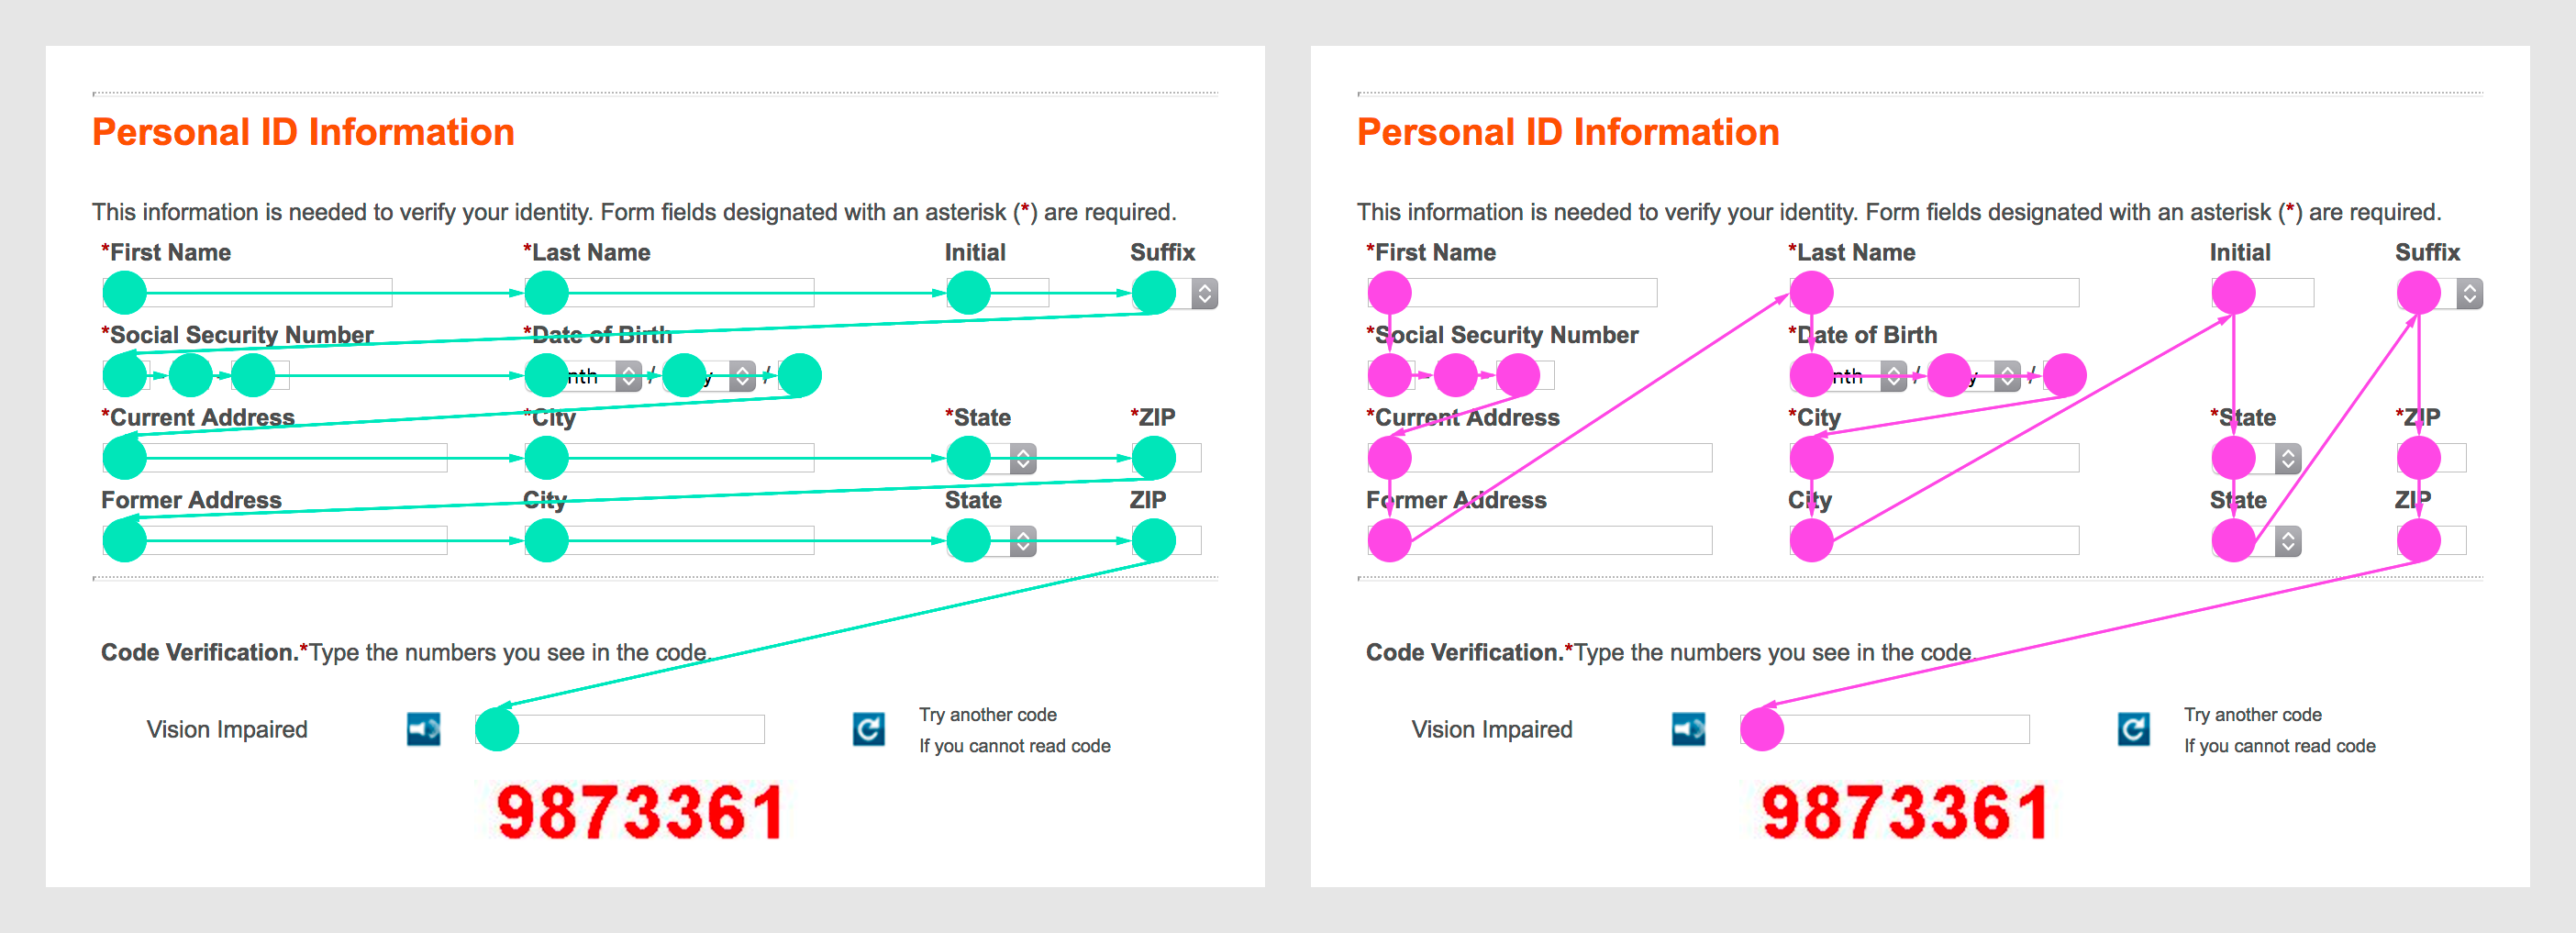 Screenshot illustrating ambiguity in the visual scan pattern of Equifax's form. It is unclear if you are supposed to read the form vertically or horizontally.